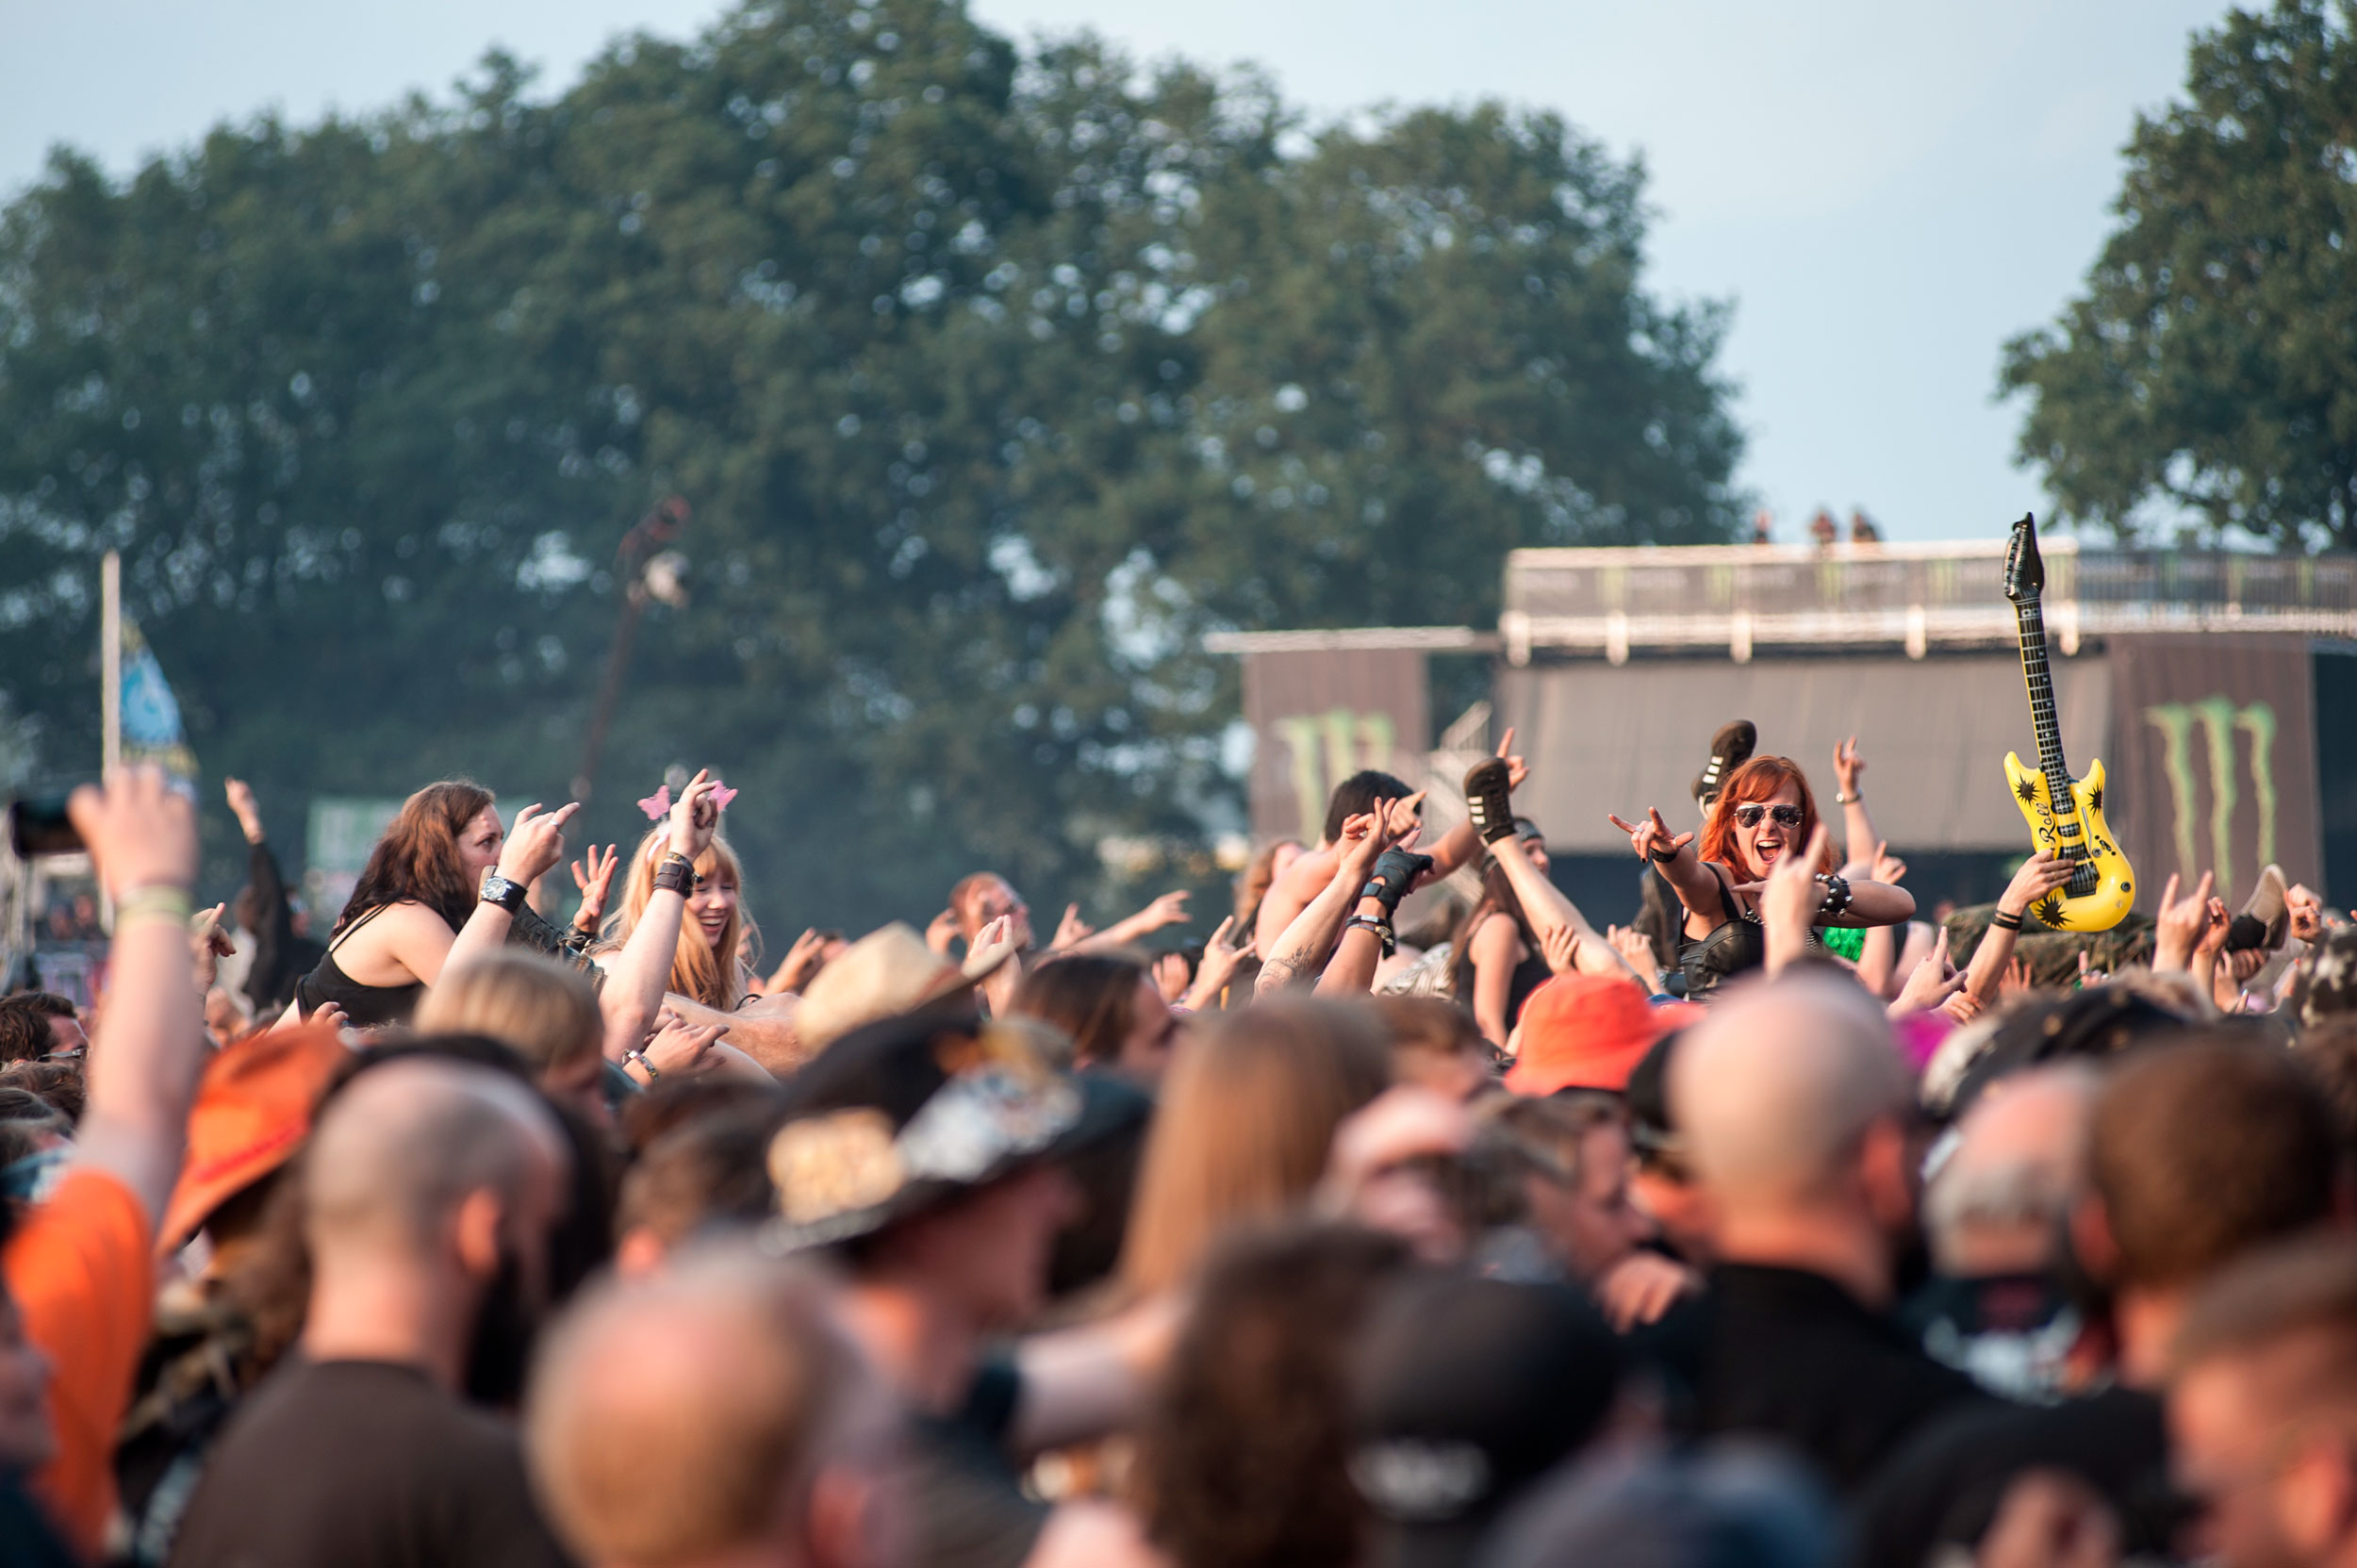 25th Wacken, Reportage, Musikfestival, Monster Energy, Reportagefoto,